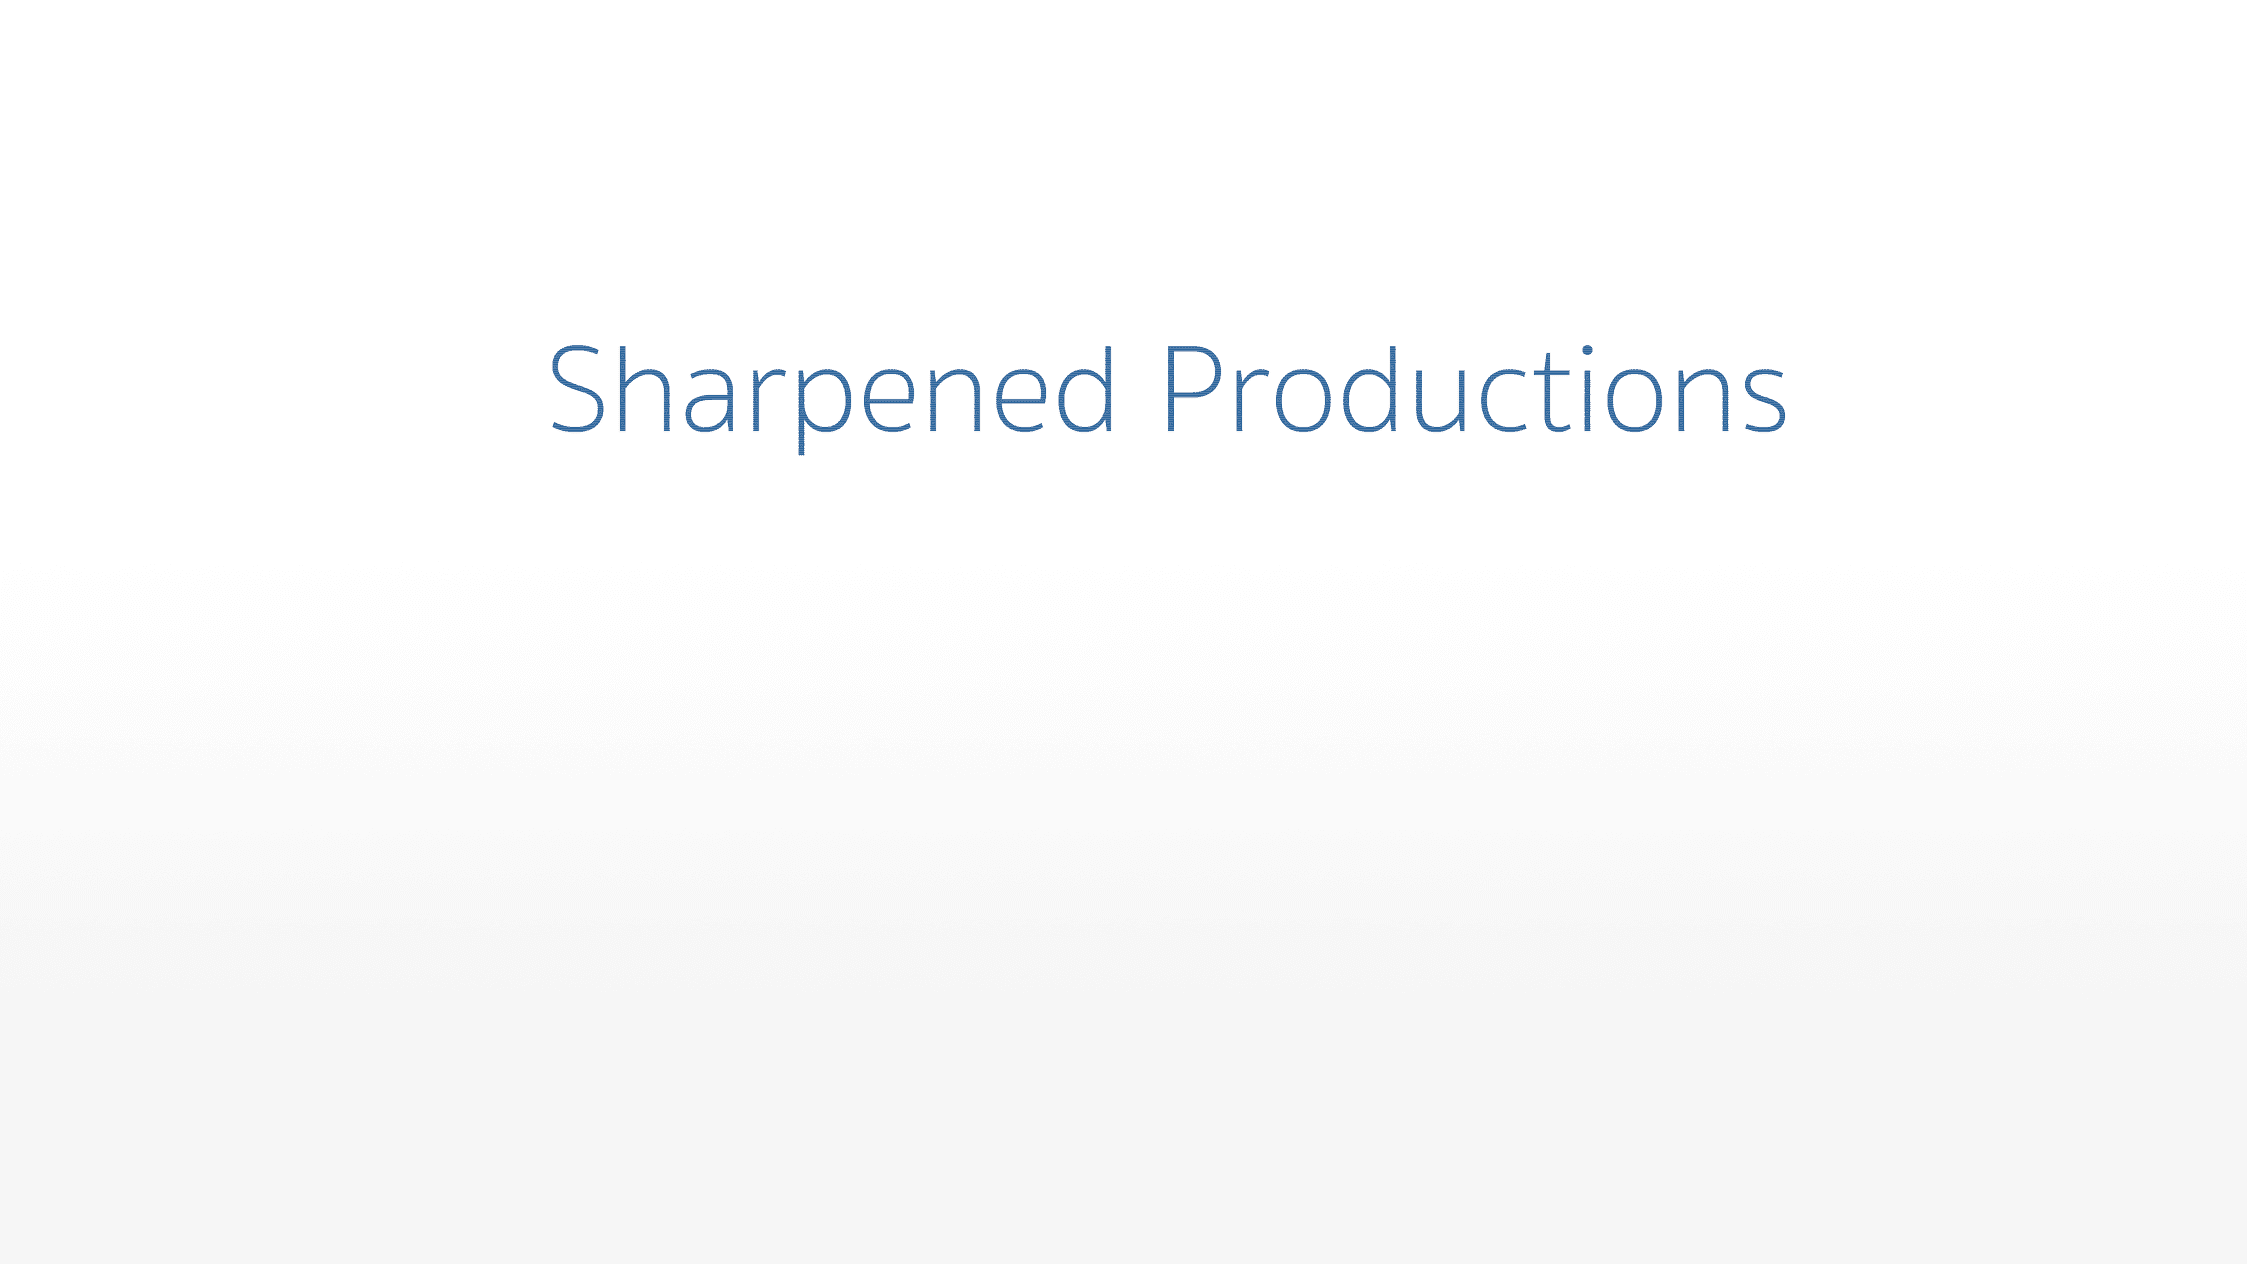 Sharpened Productions